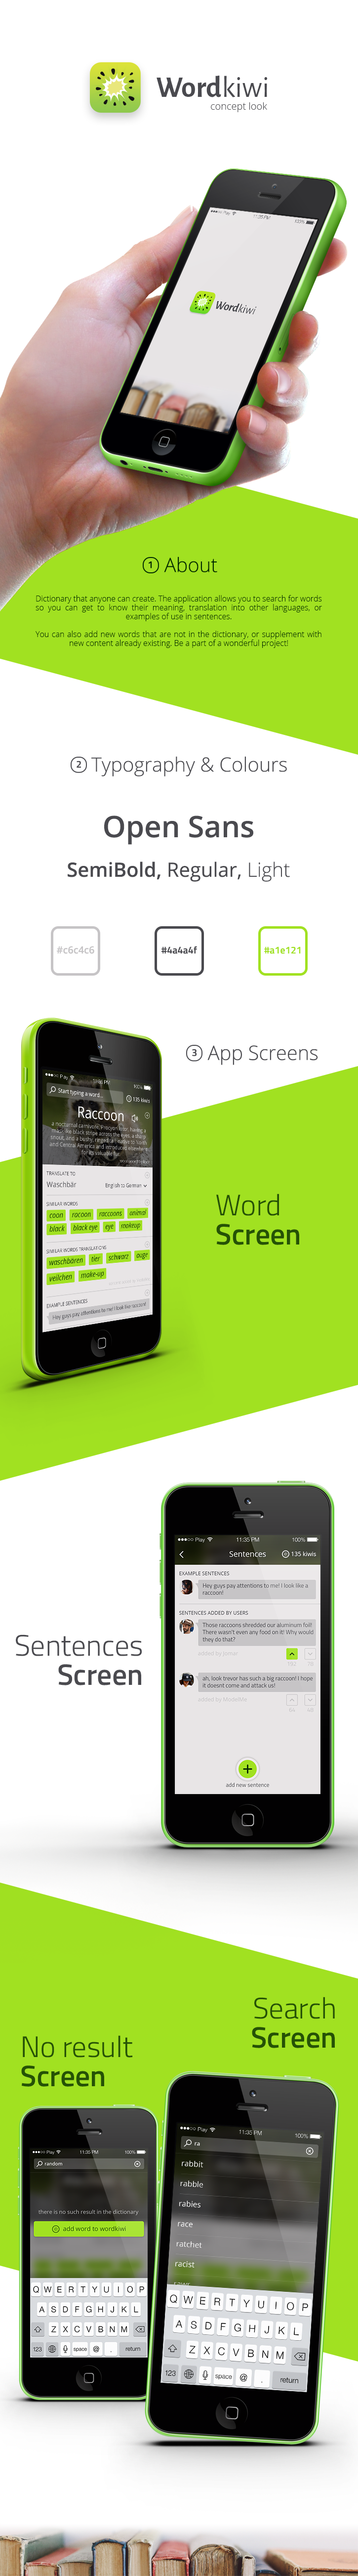 Create a friendly and social app for wordkiwi